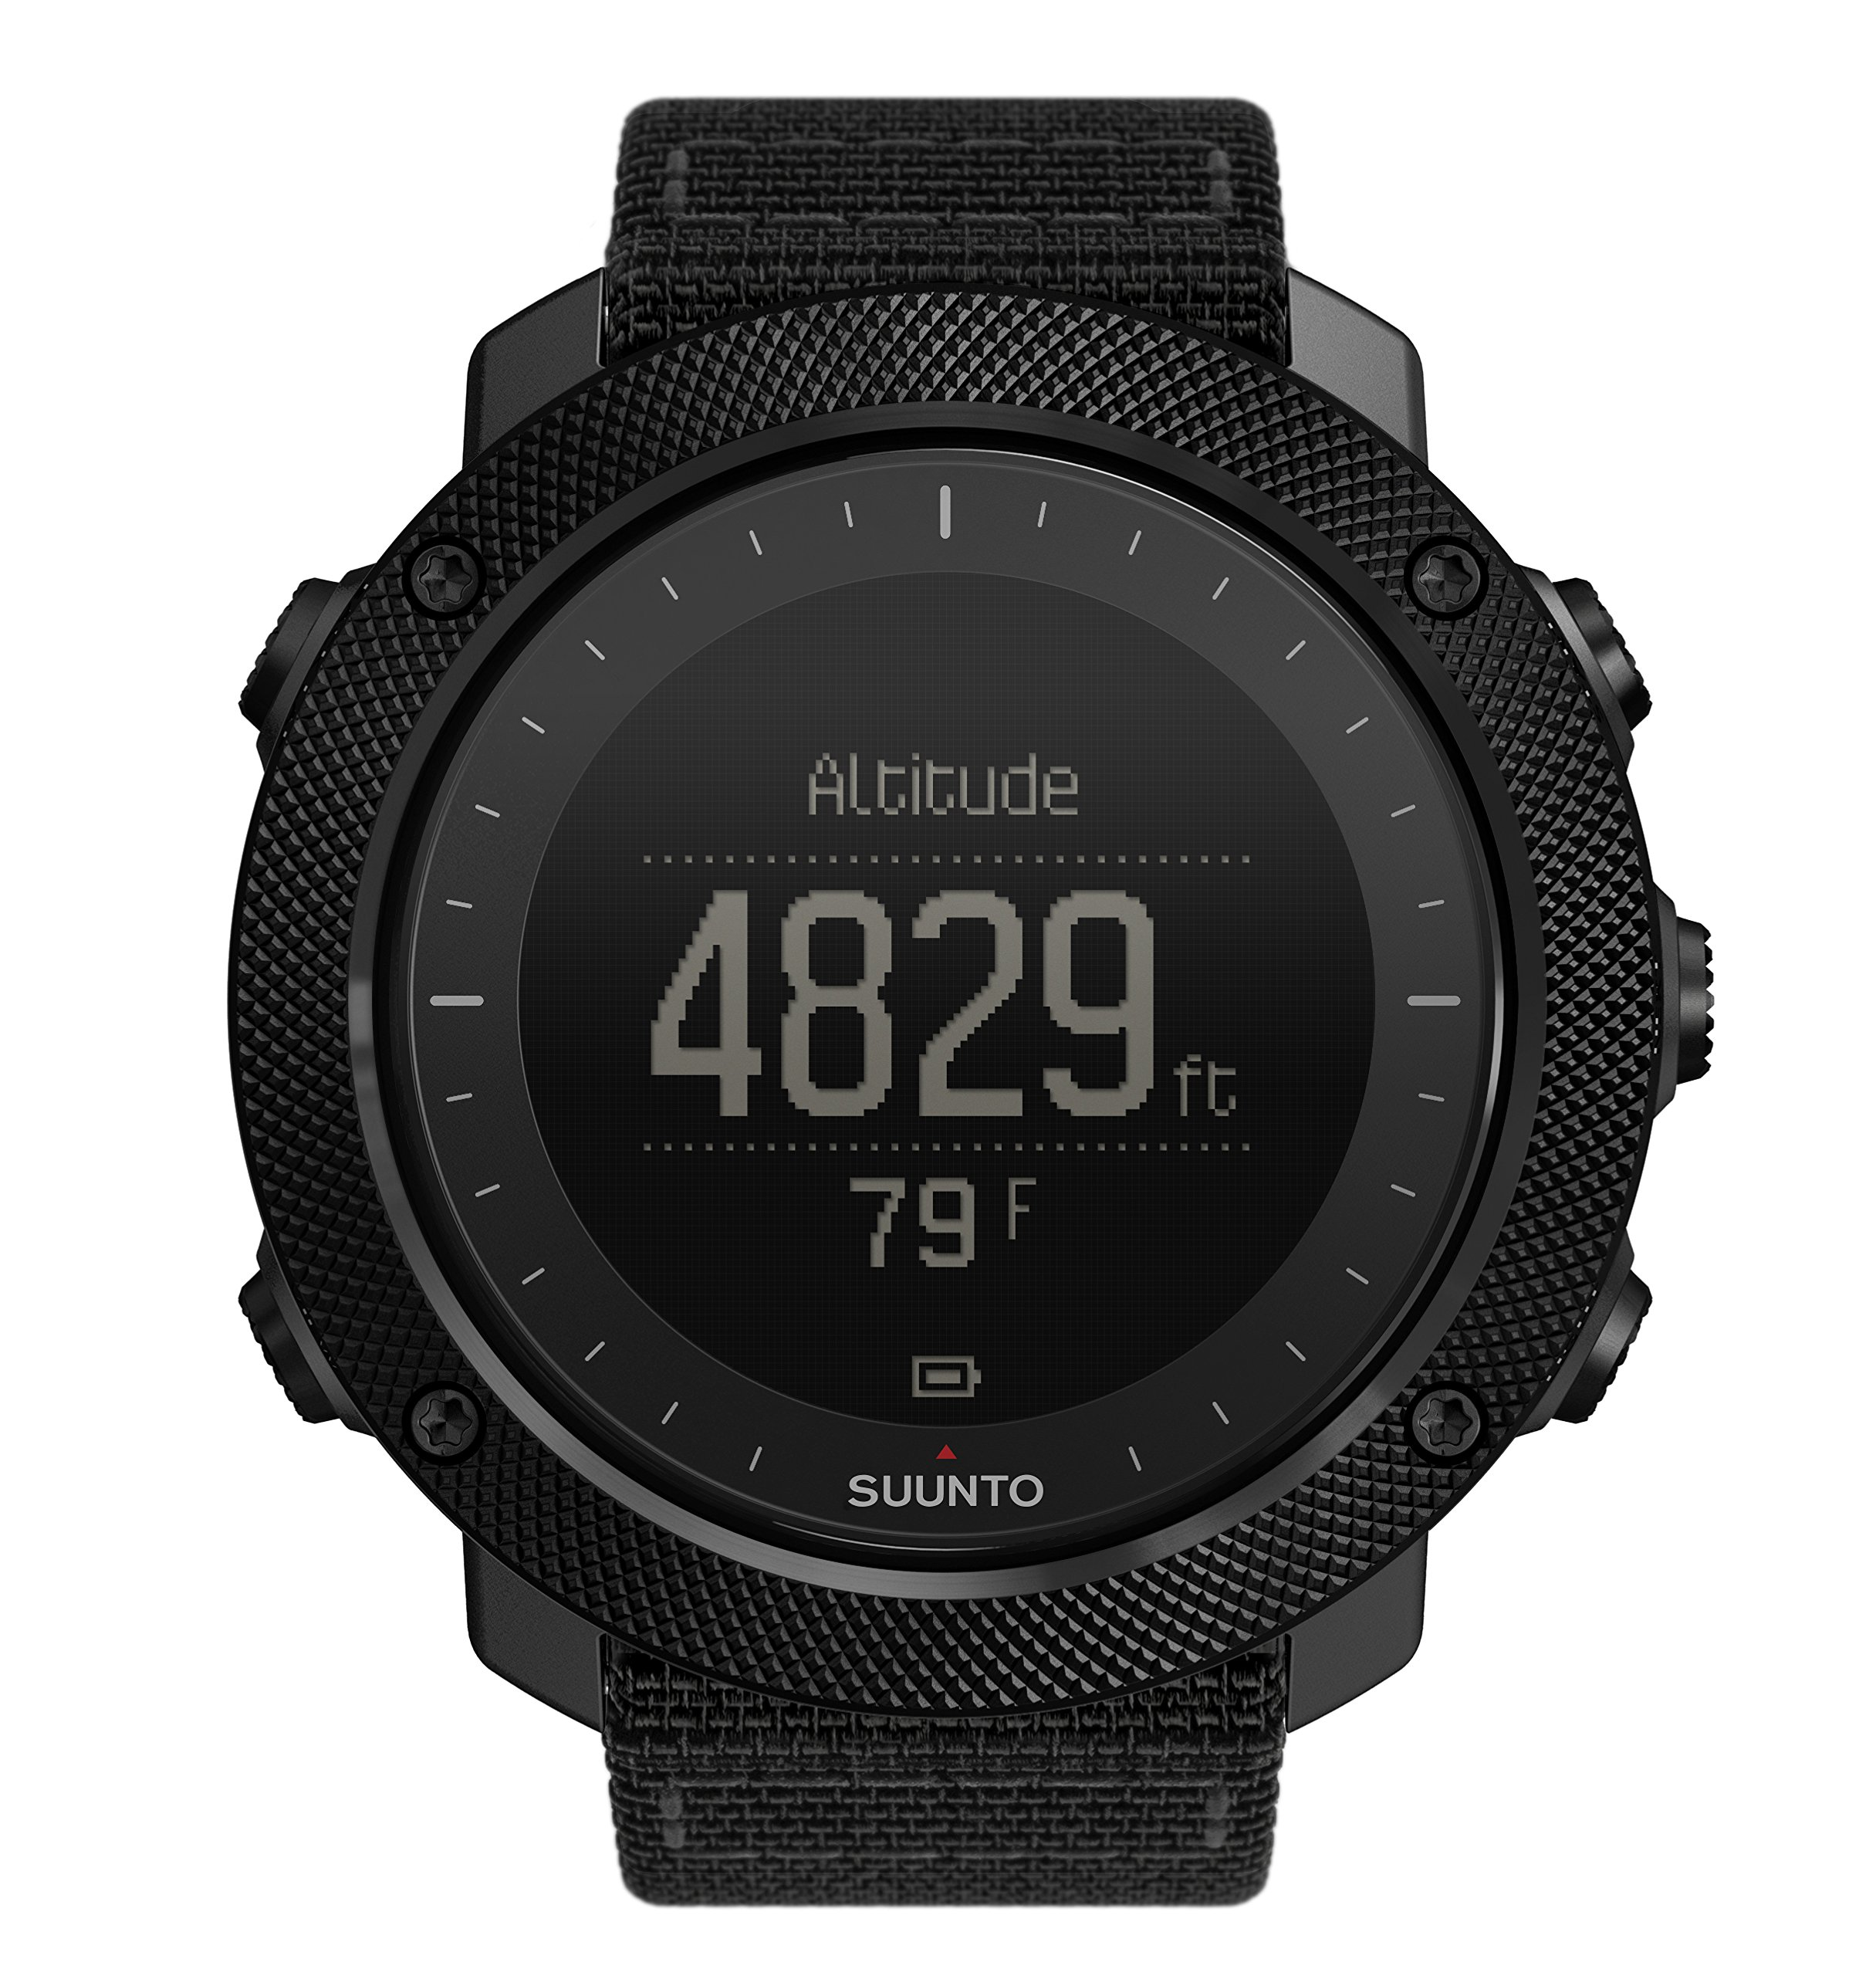 Suunto Traverse Alpha GPS/GLONASS Watch with Versatile Outdoor Functions for Fishing and Hunting and Wearable4U Ultimate Power Pack Bundle (Stealth) by Wearable4u (Image #3)